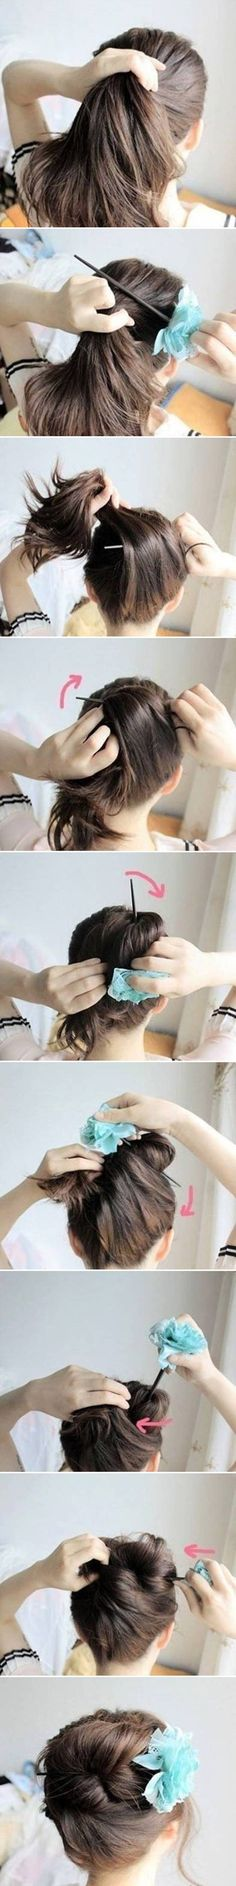 How to DIY Easy Bun Hairstyle Using Chopstick #fashion #hairstyle